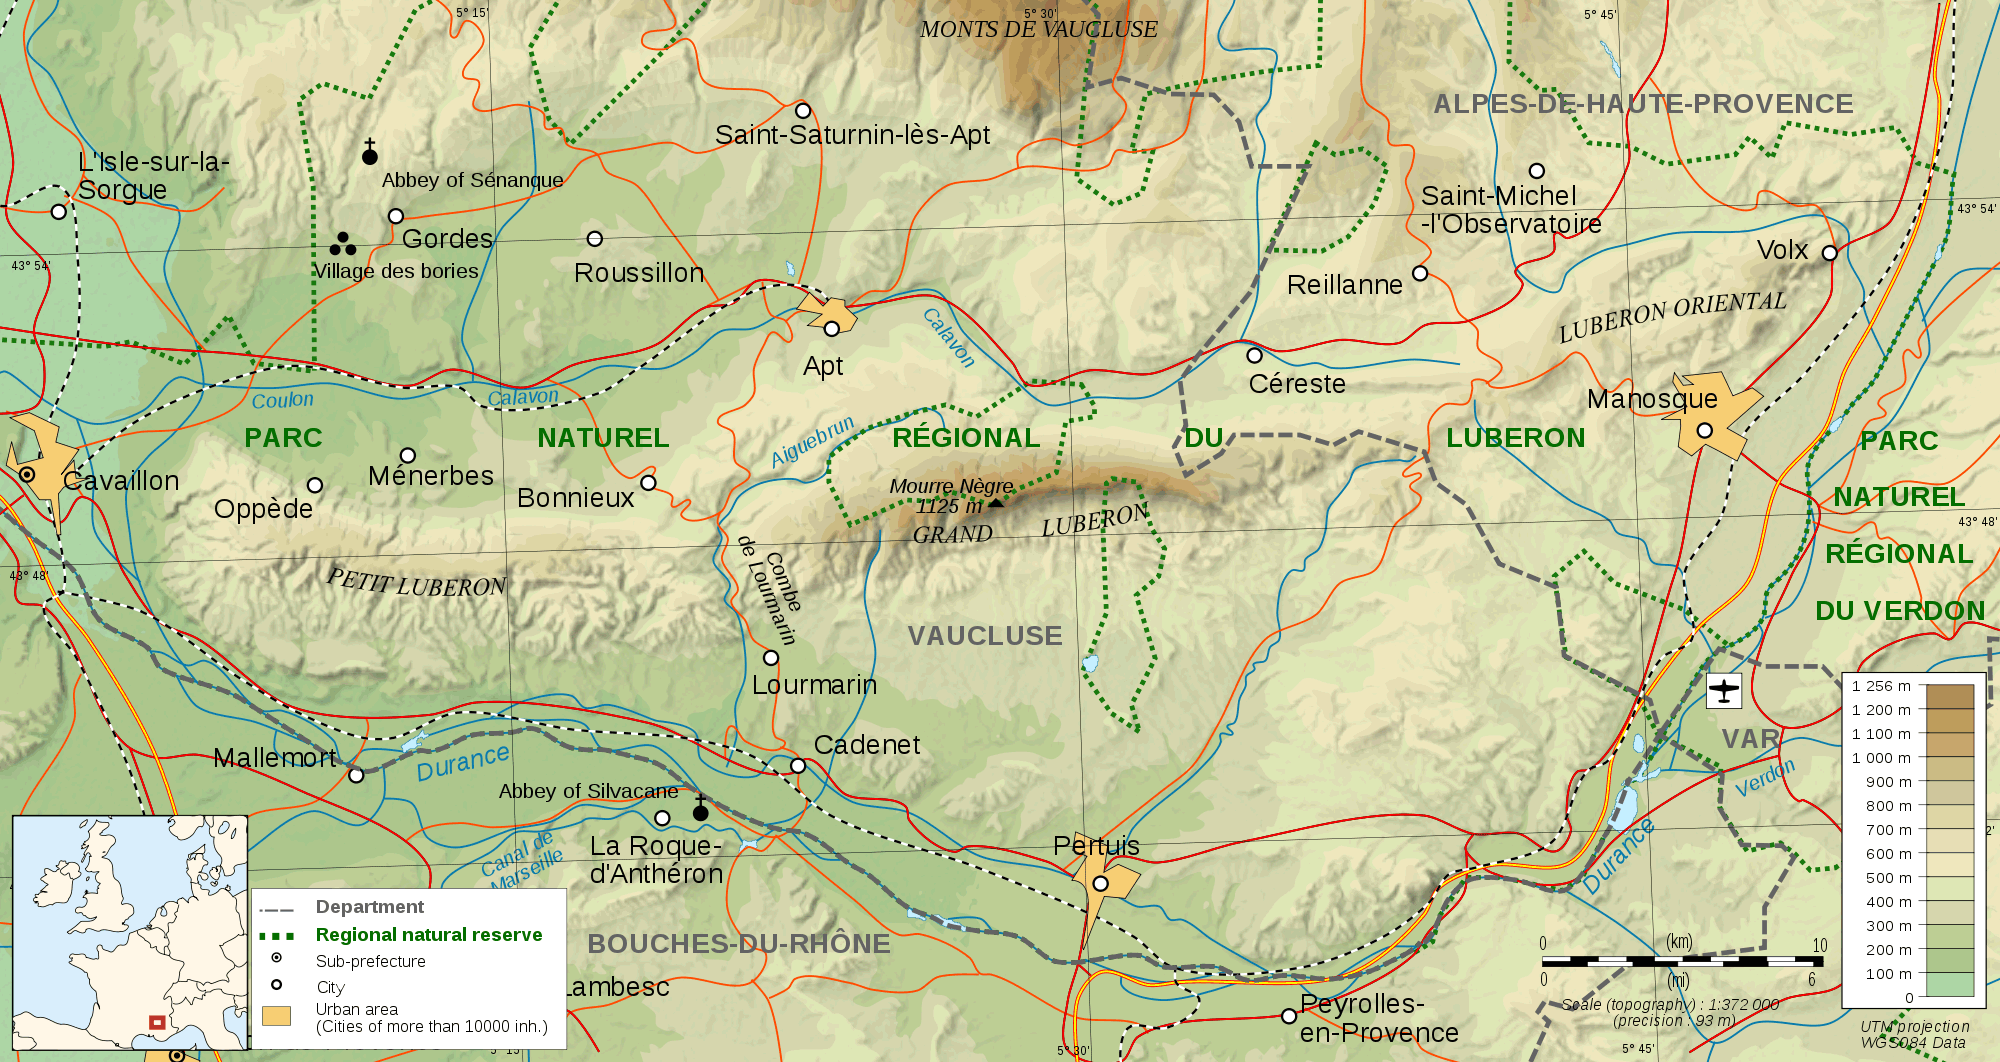 Luberon Topographic Map